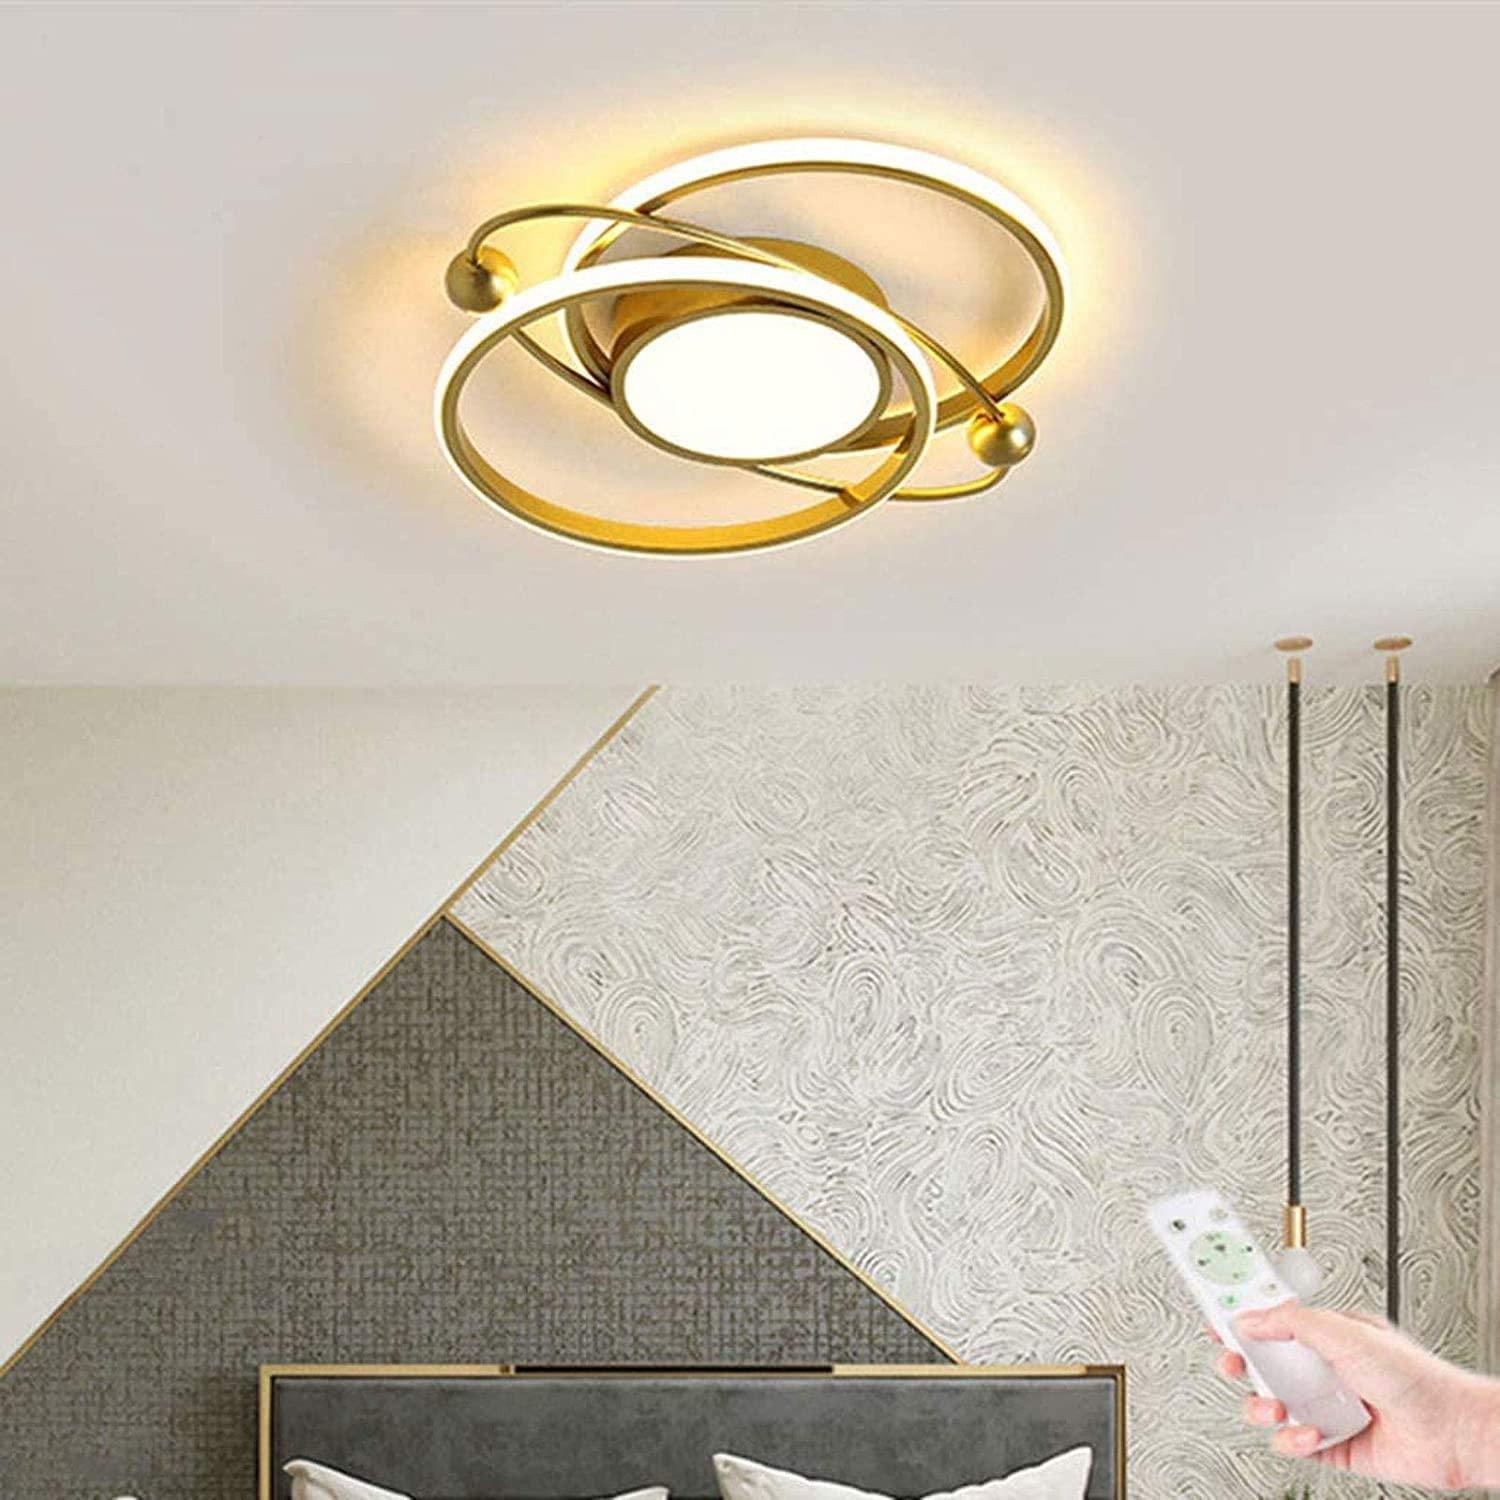 WEM Modern Golden Ceiling Light, Led Ring Design Dimmable with Remote Control Acrylic Shade Modern Simple Ceiling Decor Lighting, Living Room Bedroom Study Room Dining Room Kitchen Office